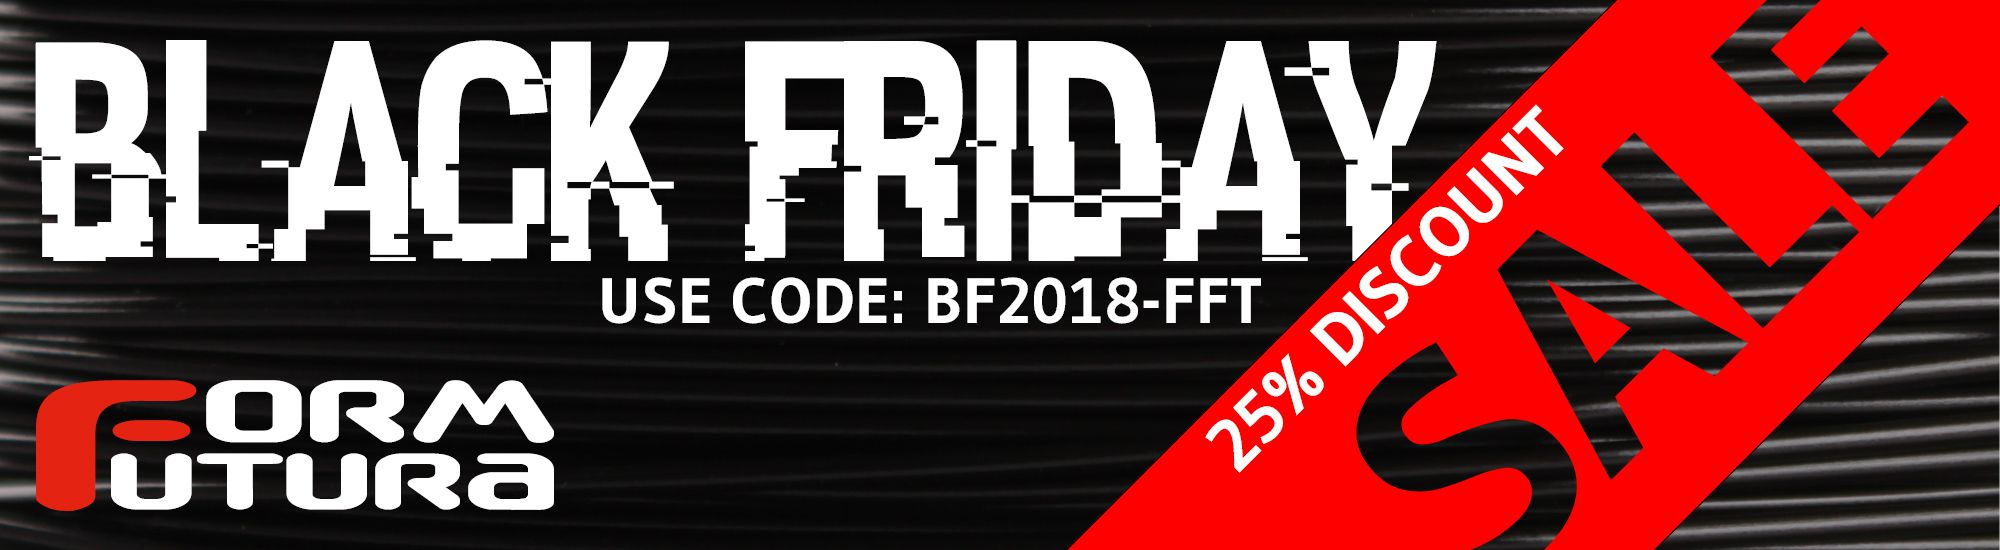 Black Friday and Cyber Monday 2018 Sale